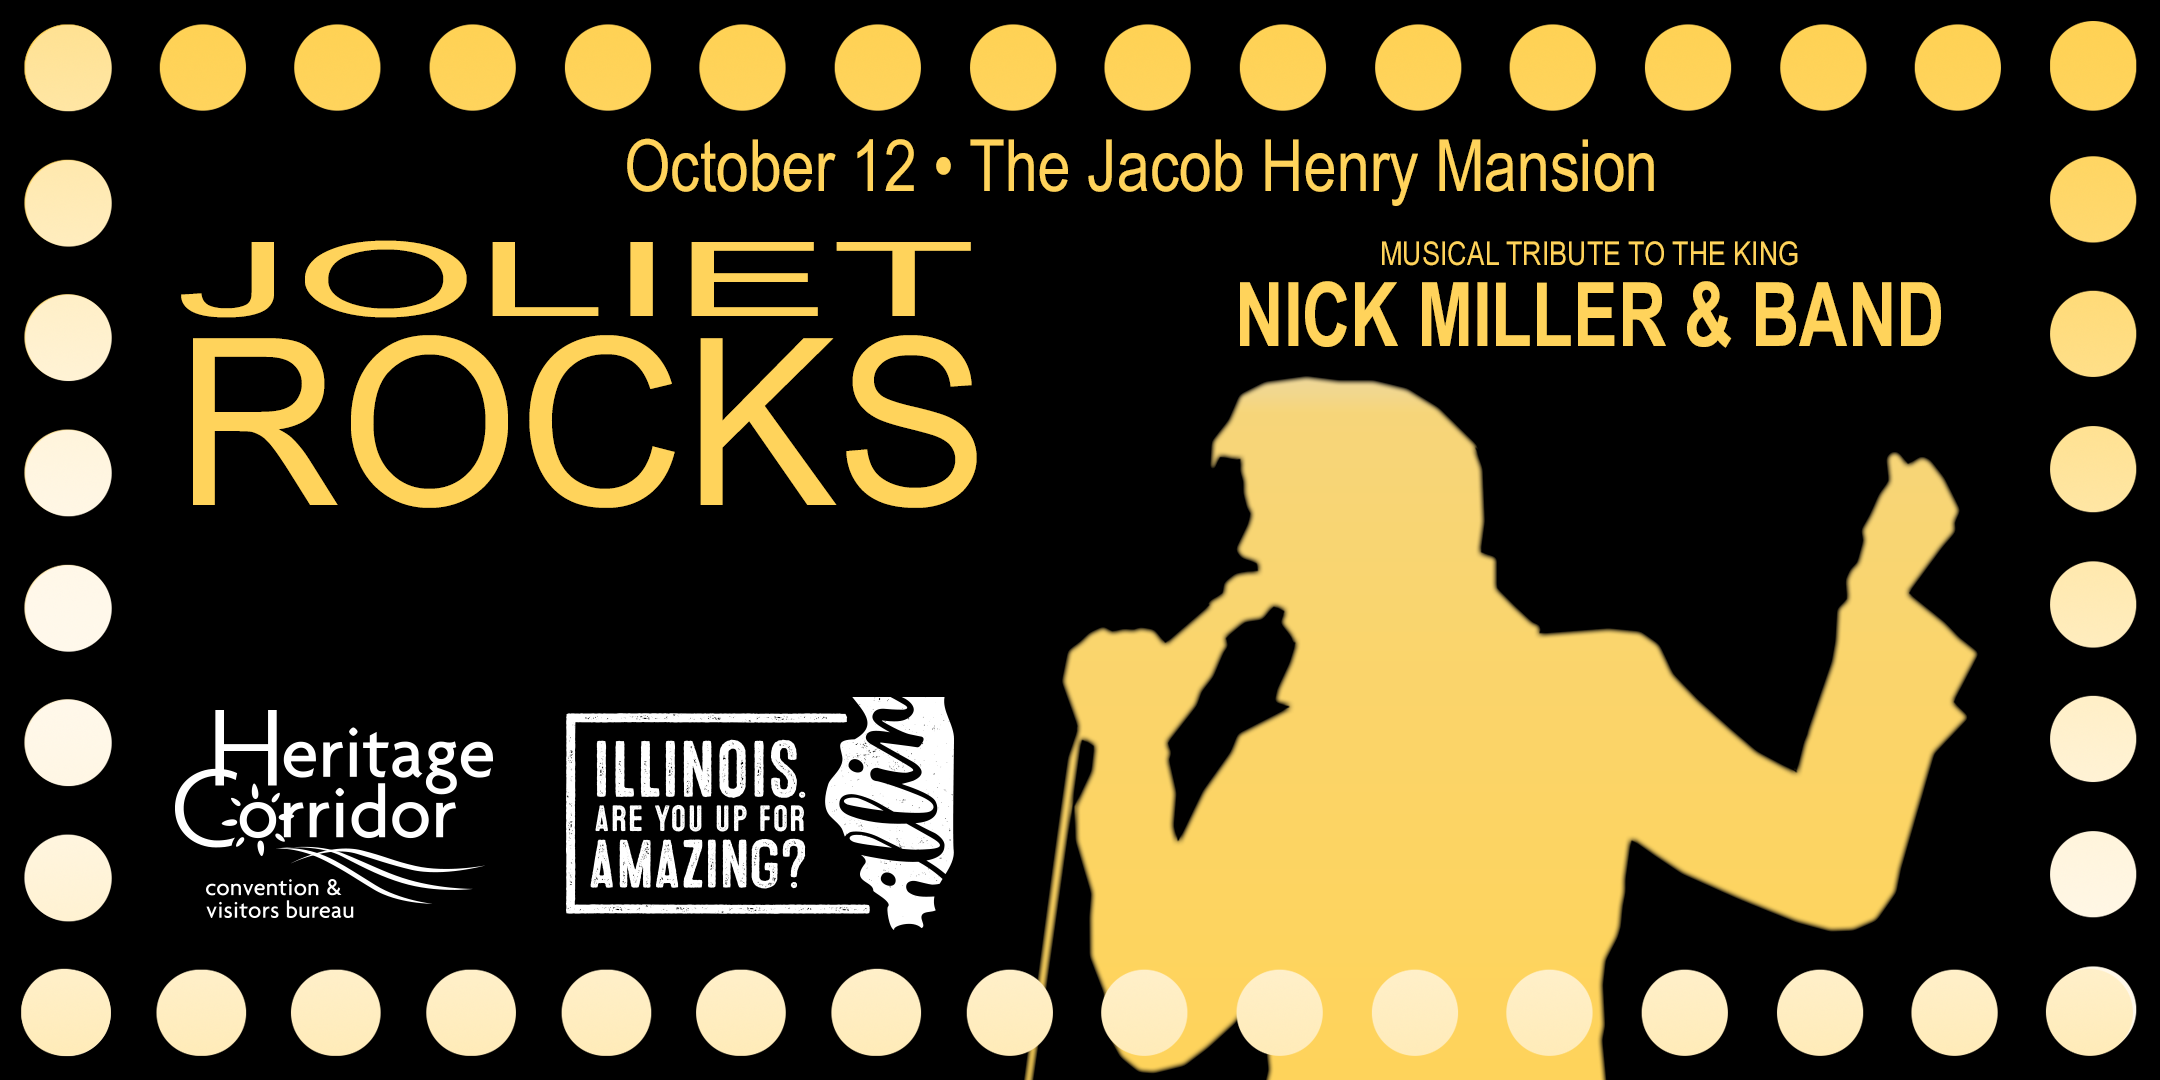 Joliet Rocks - Elvis Presley Tribute (october 12) | Joliet, IL | Jacob Henry Mansion | October 12, 2017